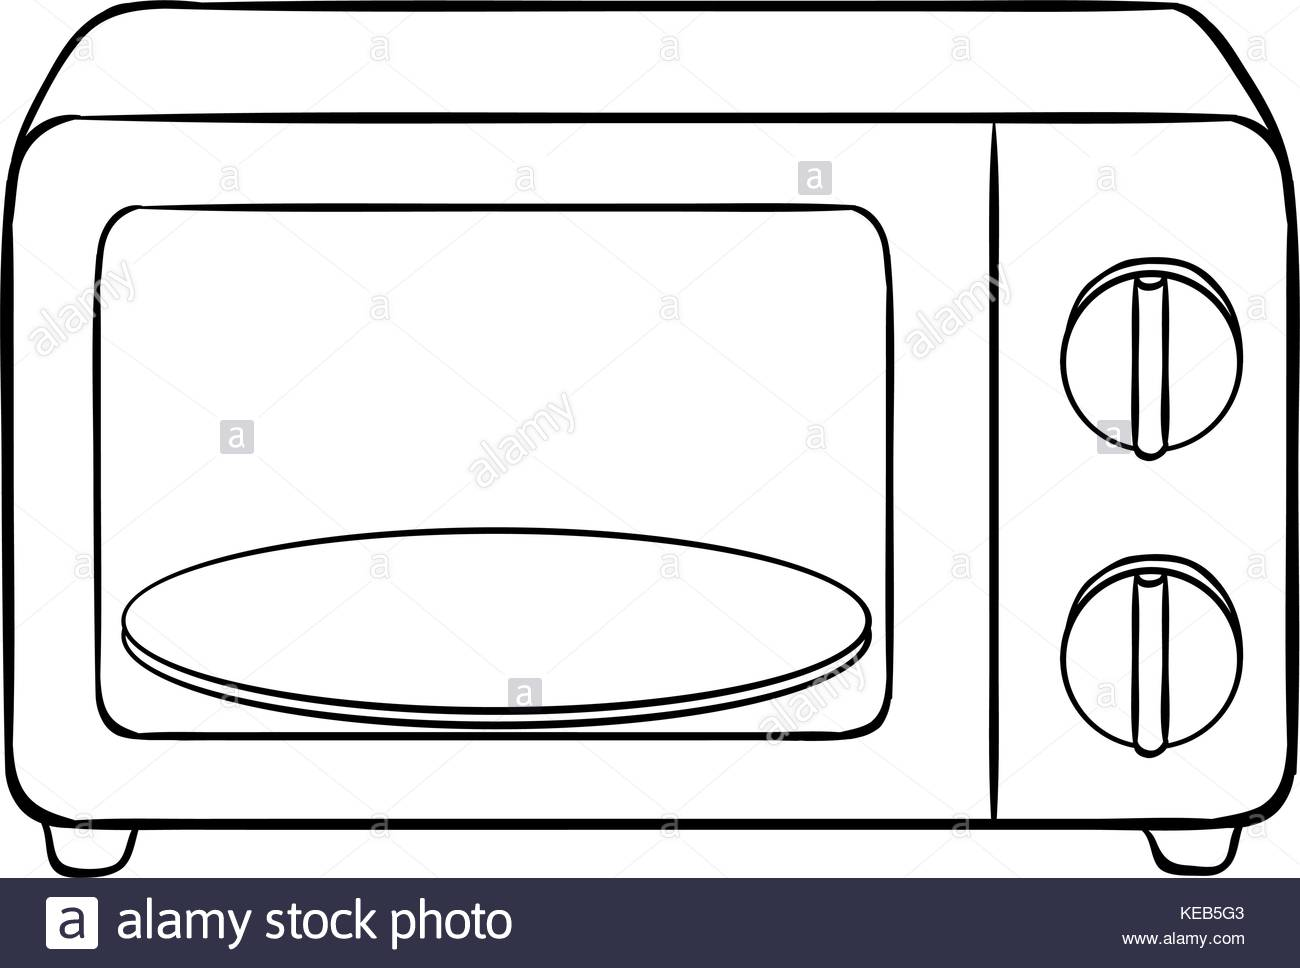 Microwave clipart hot oven. Free download best on